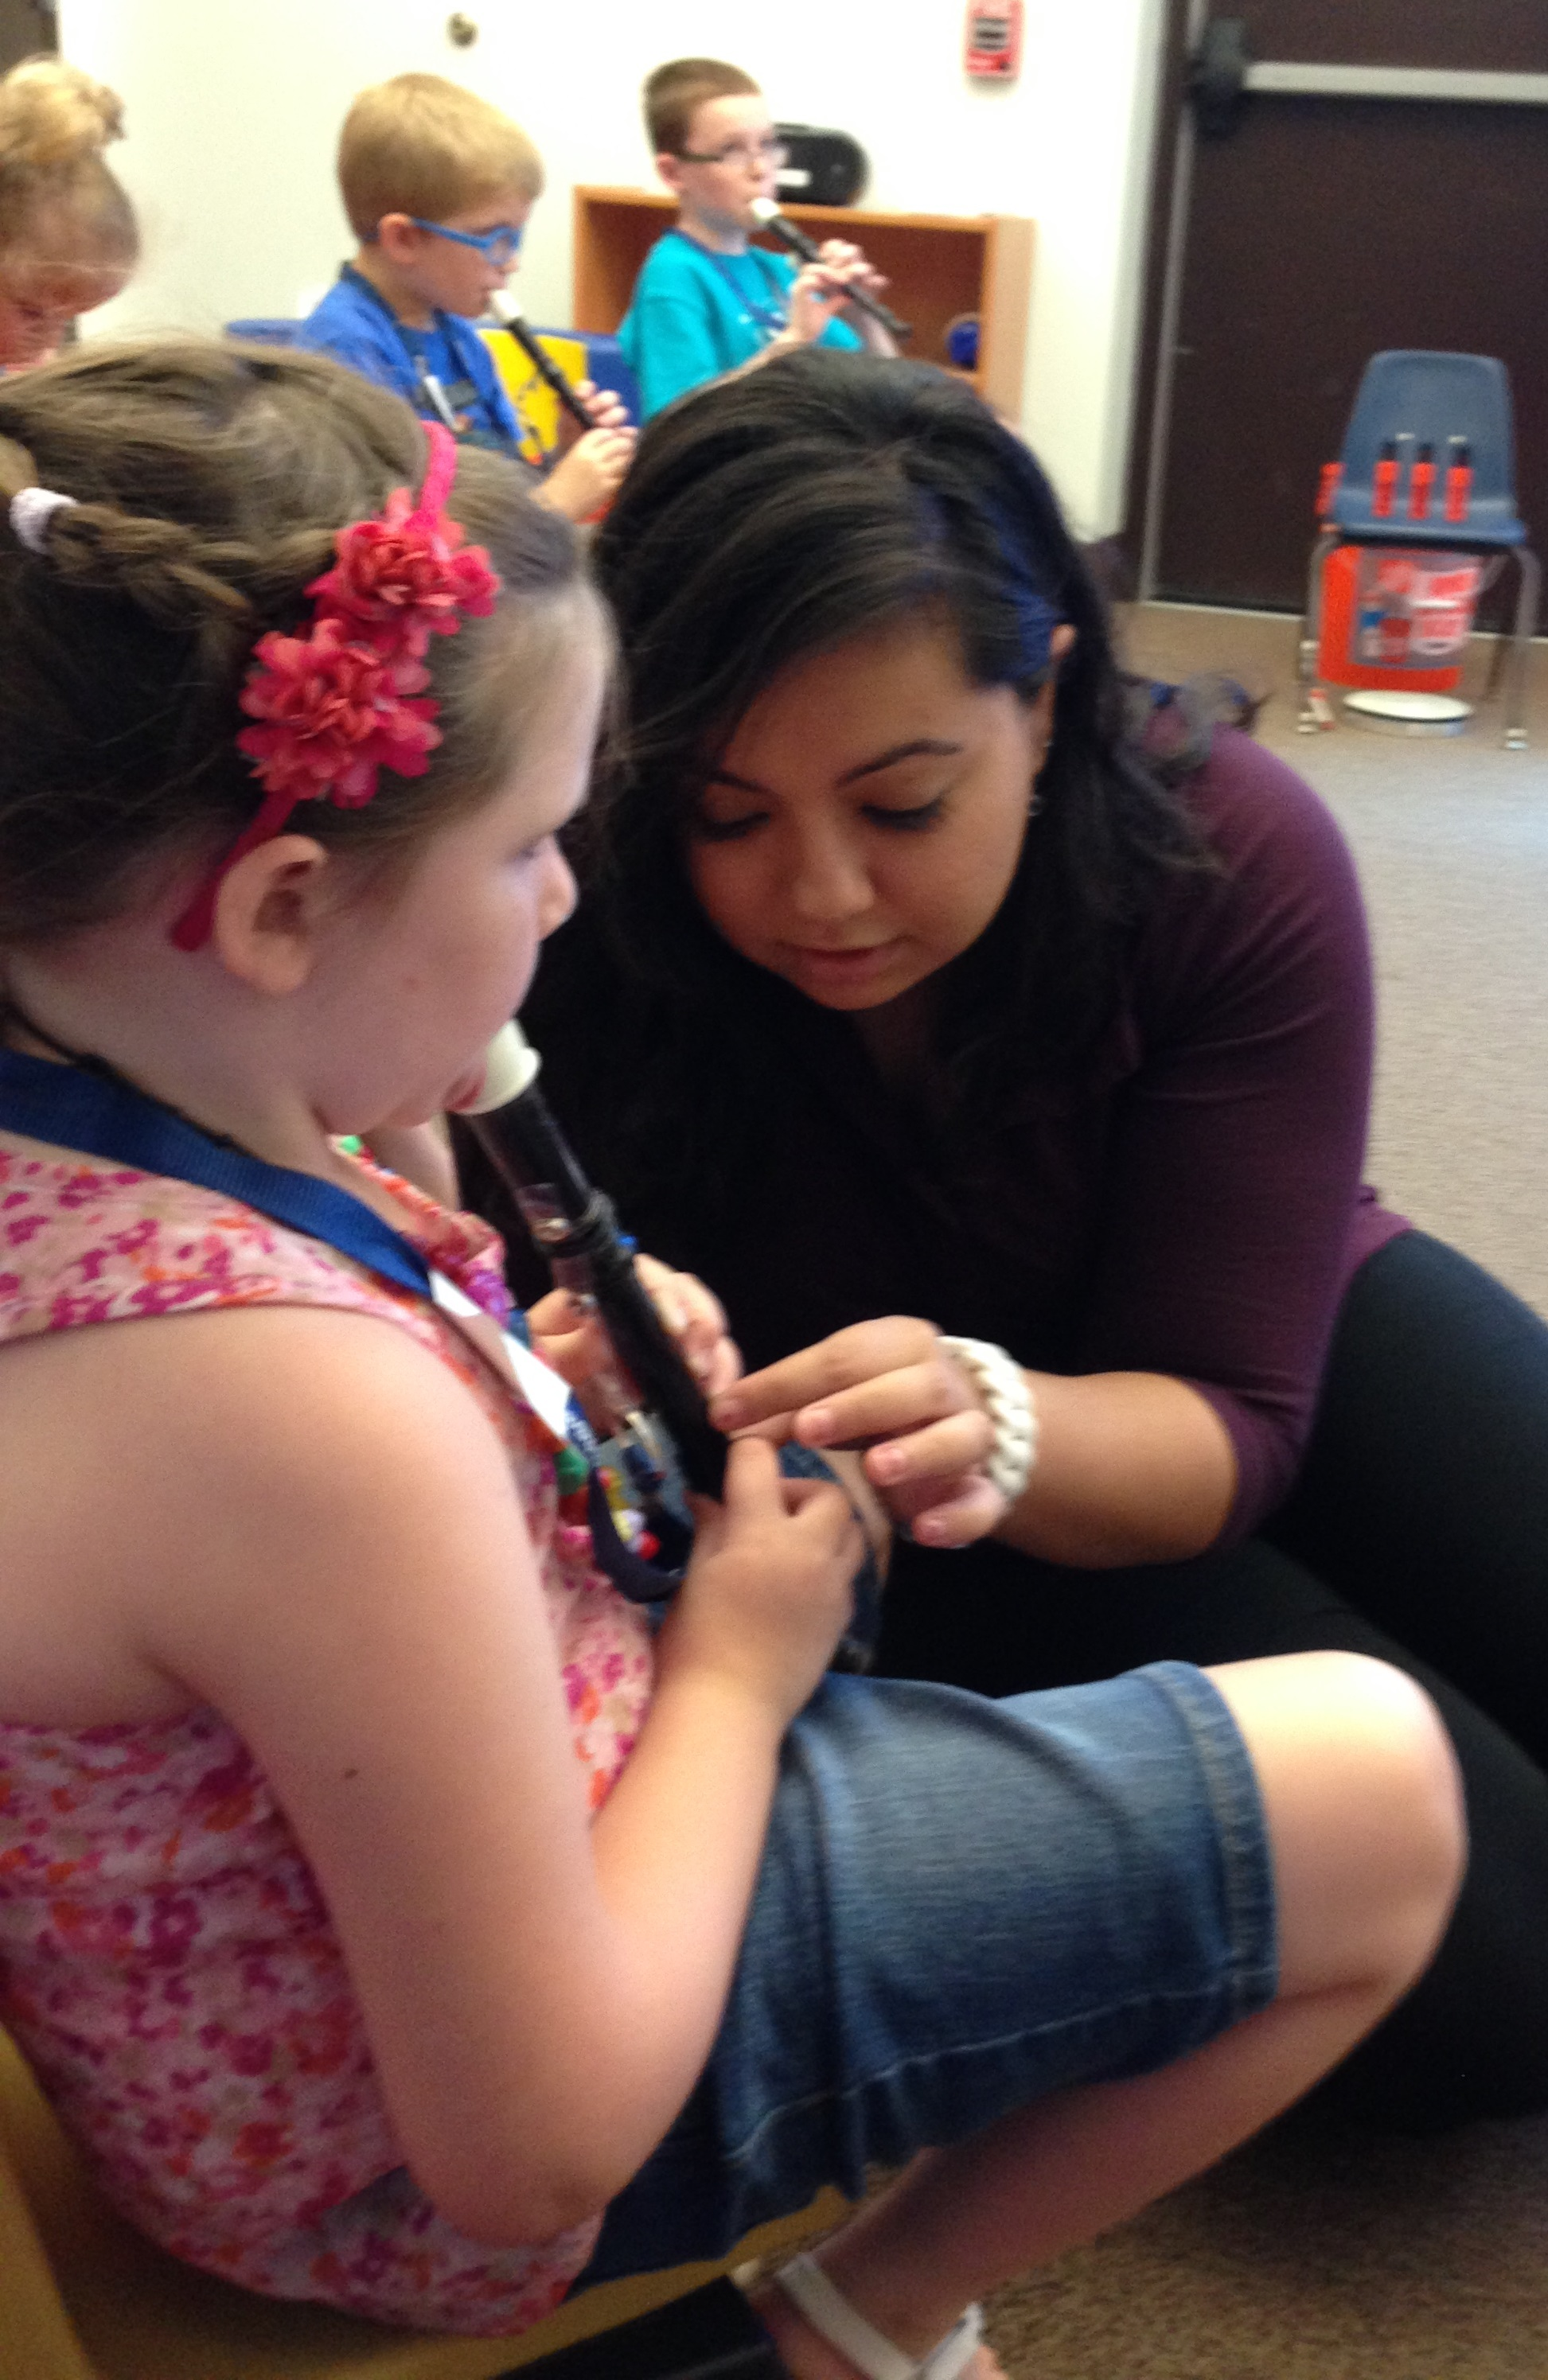 Photo of a blind woman helping teach a young blind girl how to play the recorder with three other blind children in the background playing their recorders.